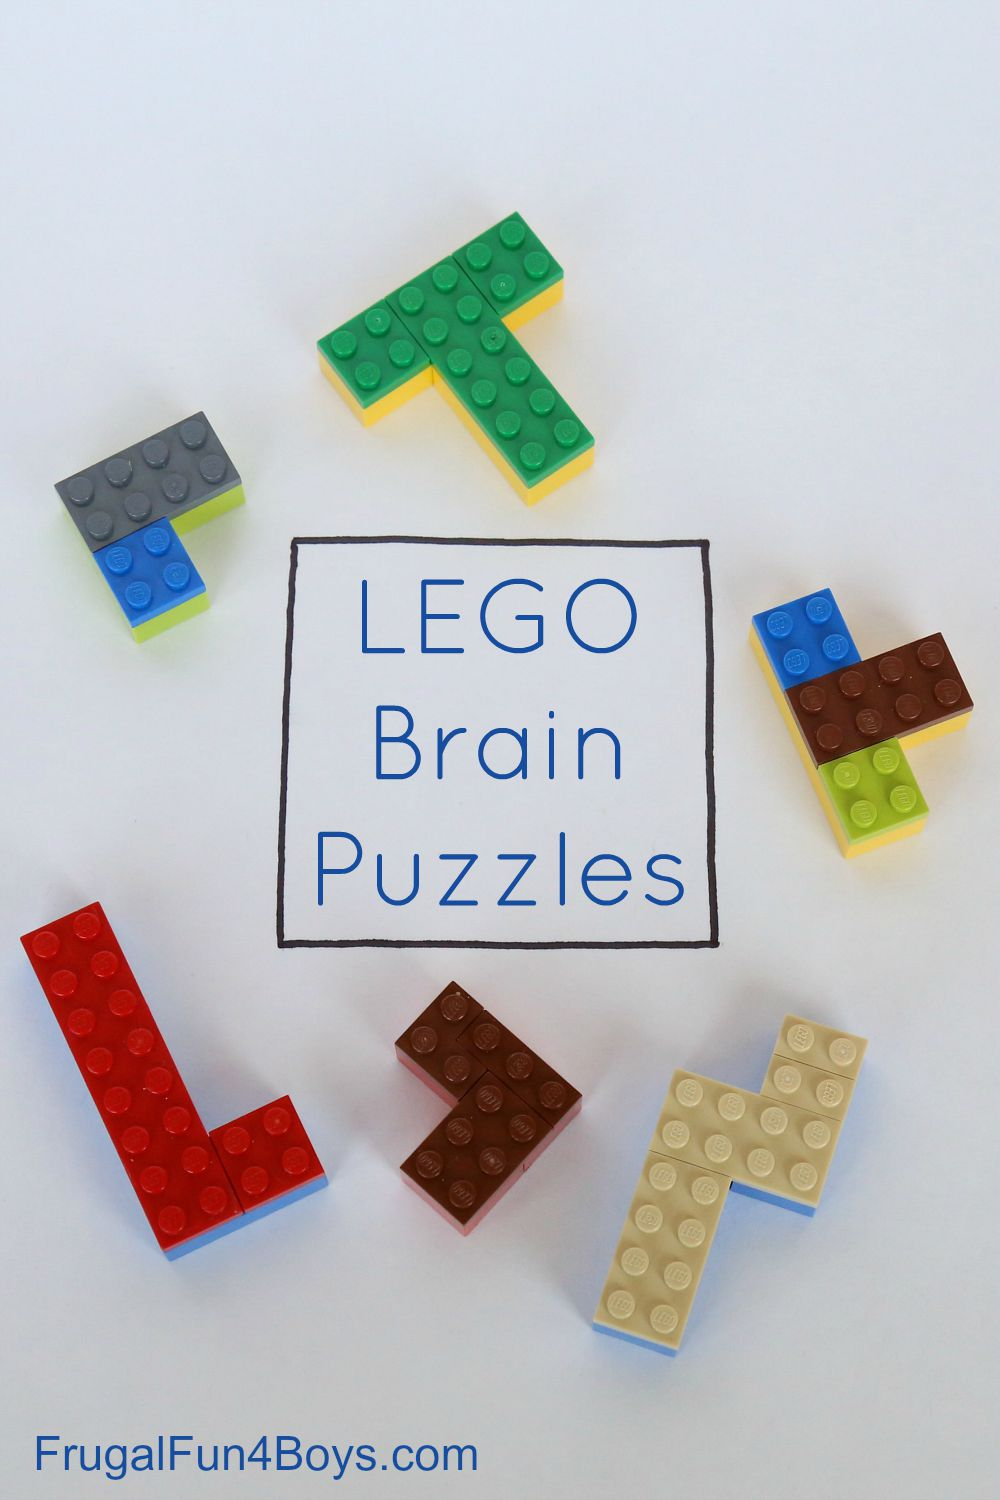 LEGO Brain Puzzles - Building Challenge for Kids